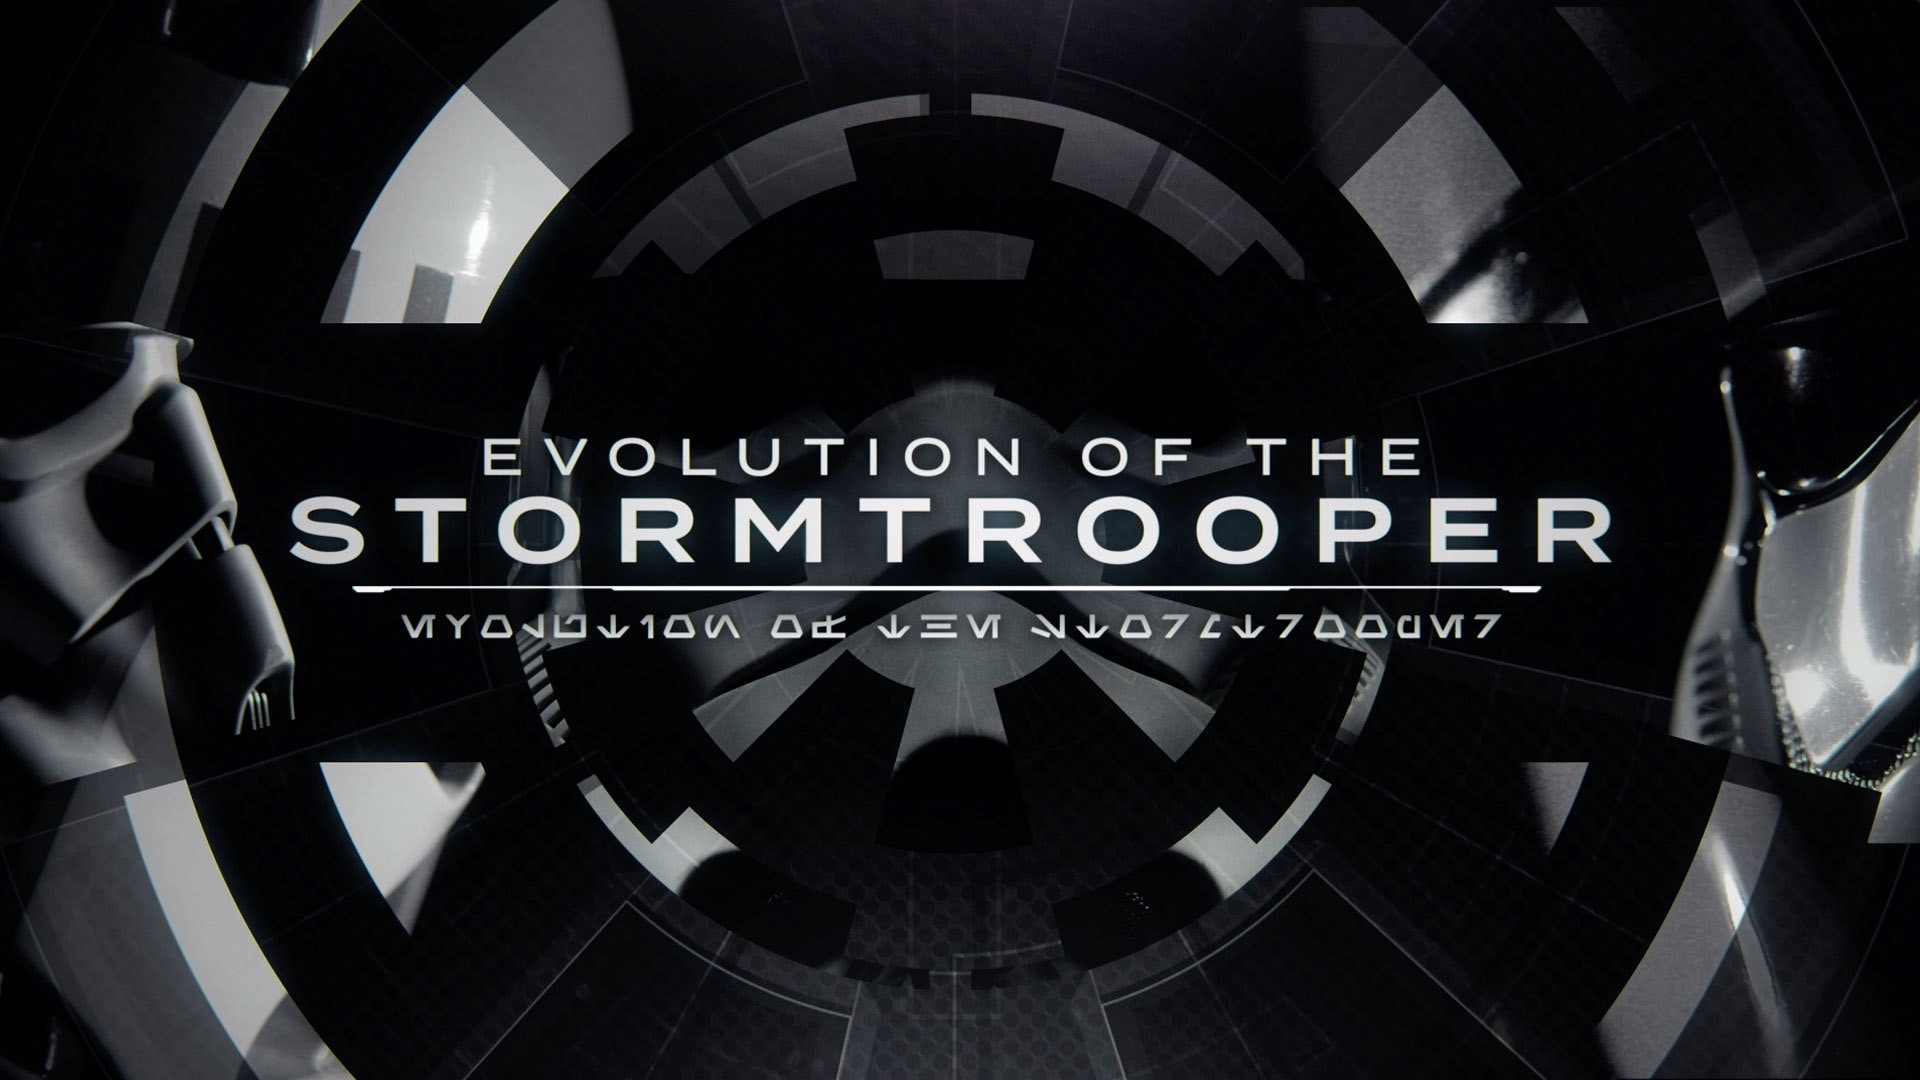 Star Wars | The Evolution of the Stormtrooper